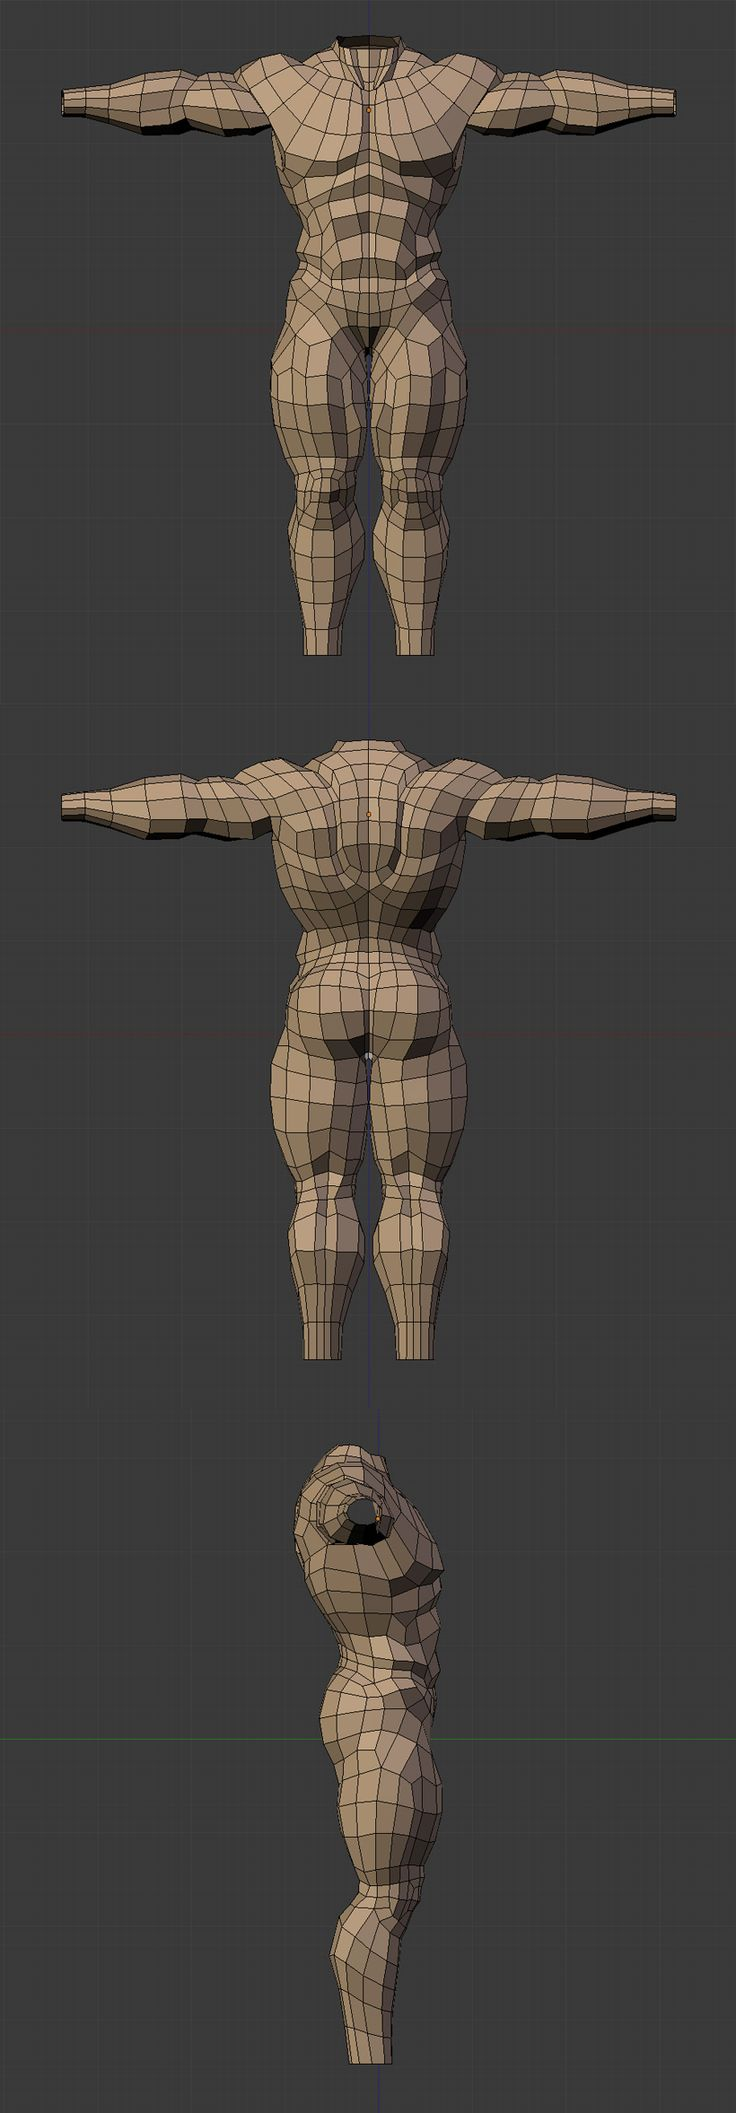 Anatomy/Topology Study_by Dude Andy_from PolyCount